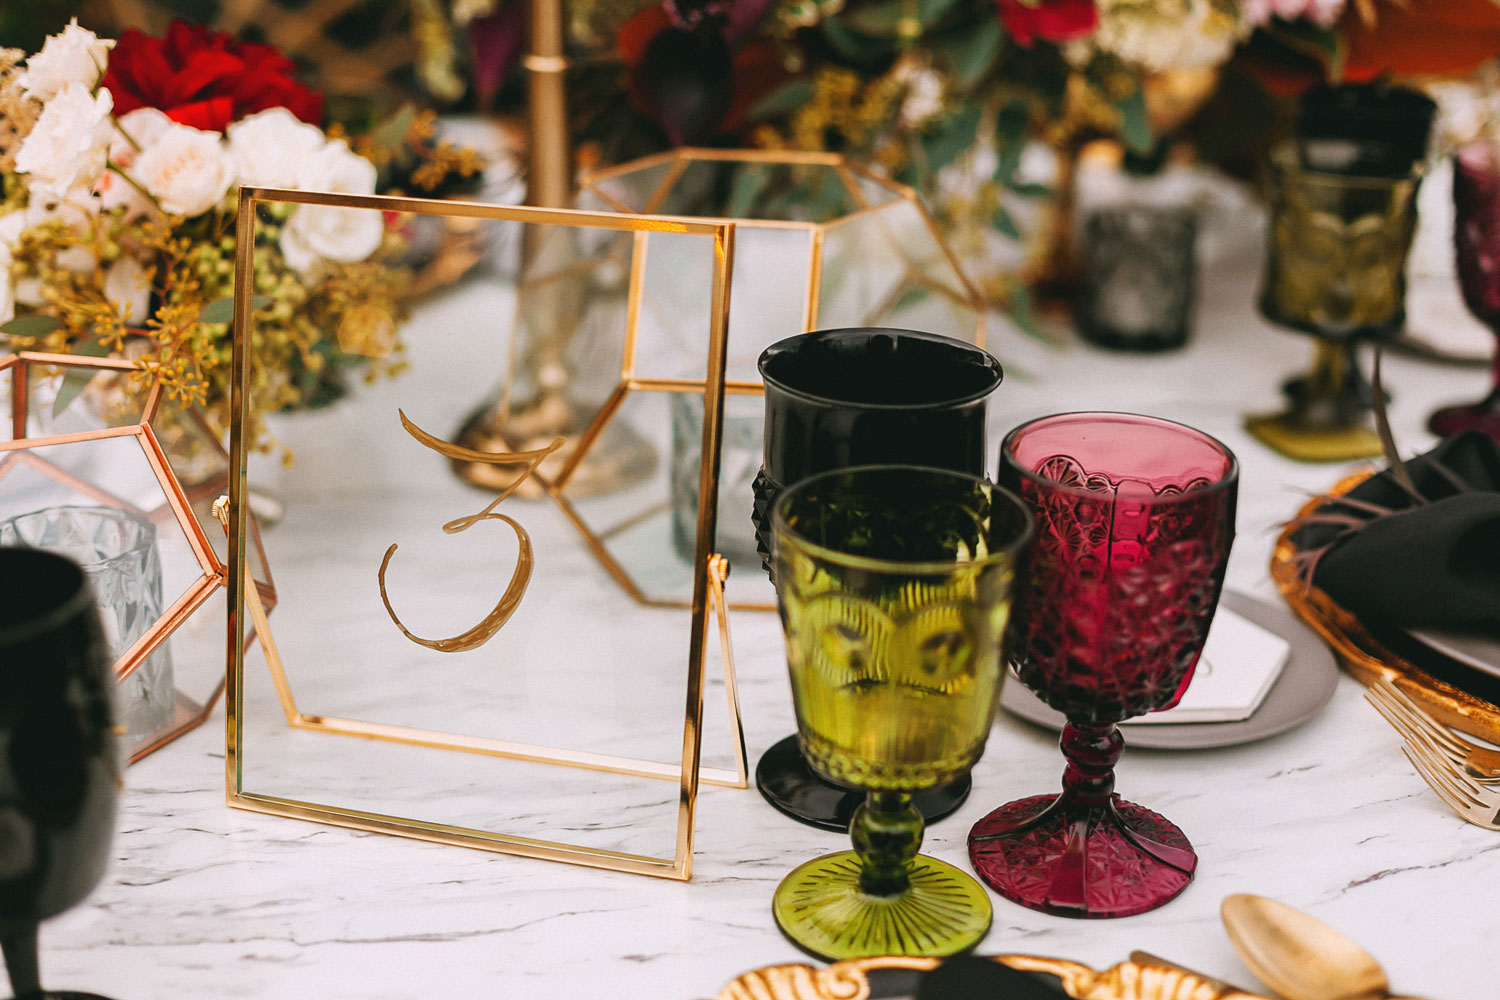 fall wedding marble table gold details colored goblet glassware drinkware